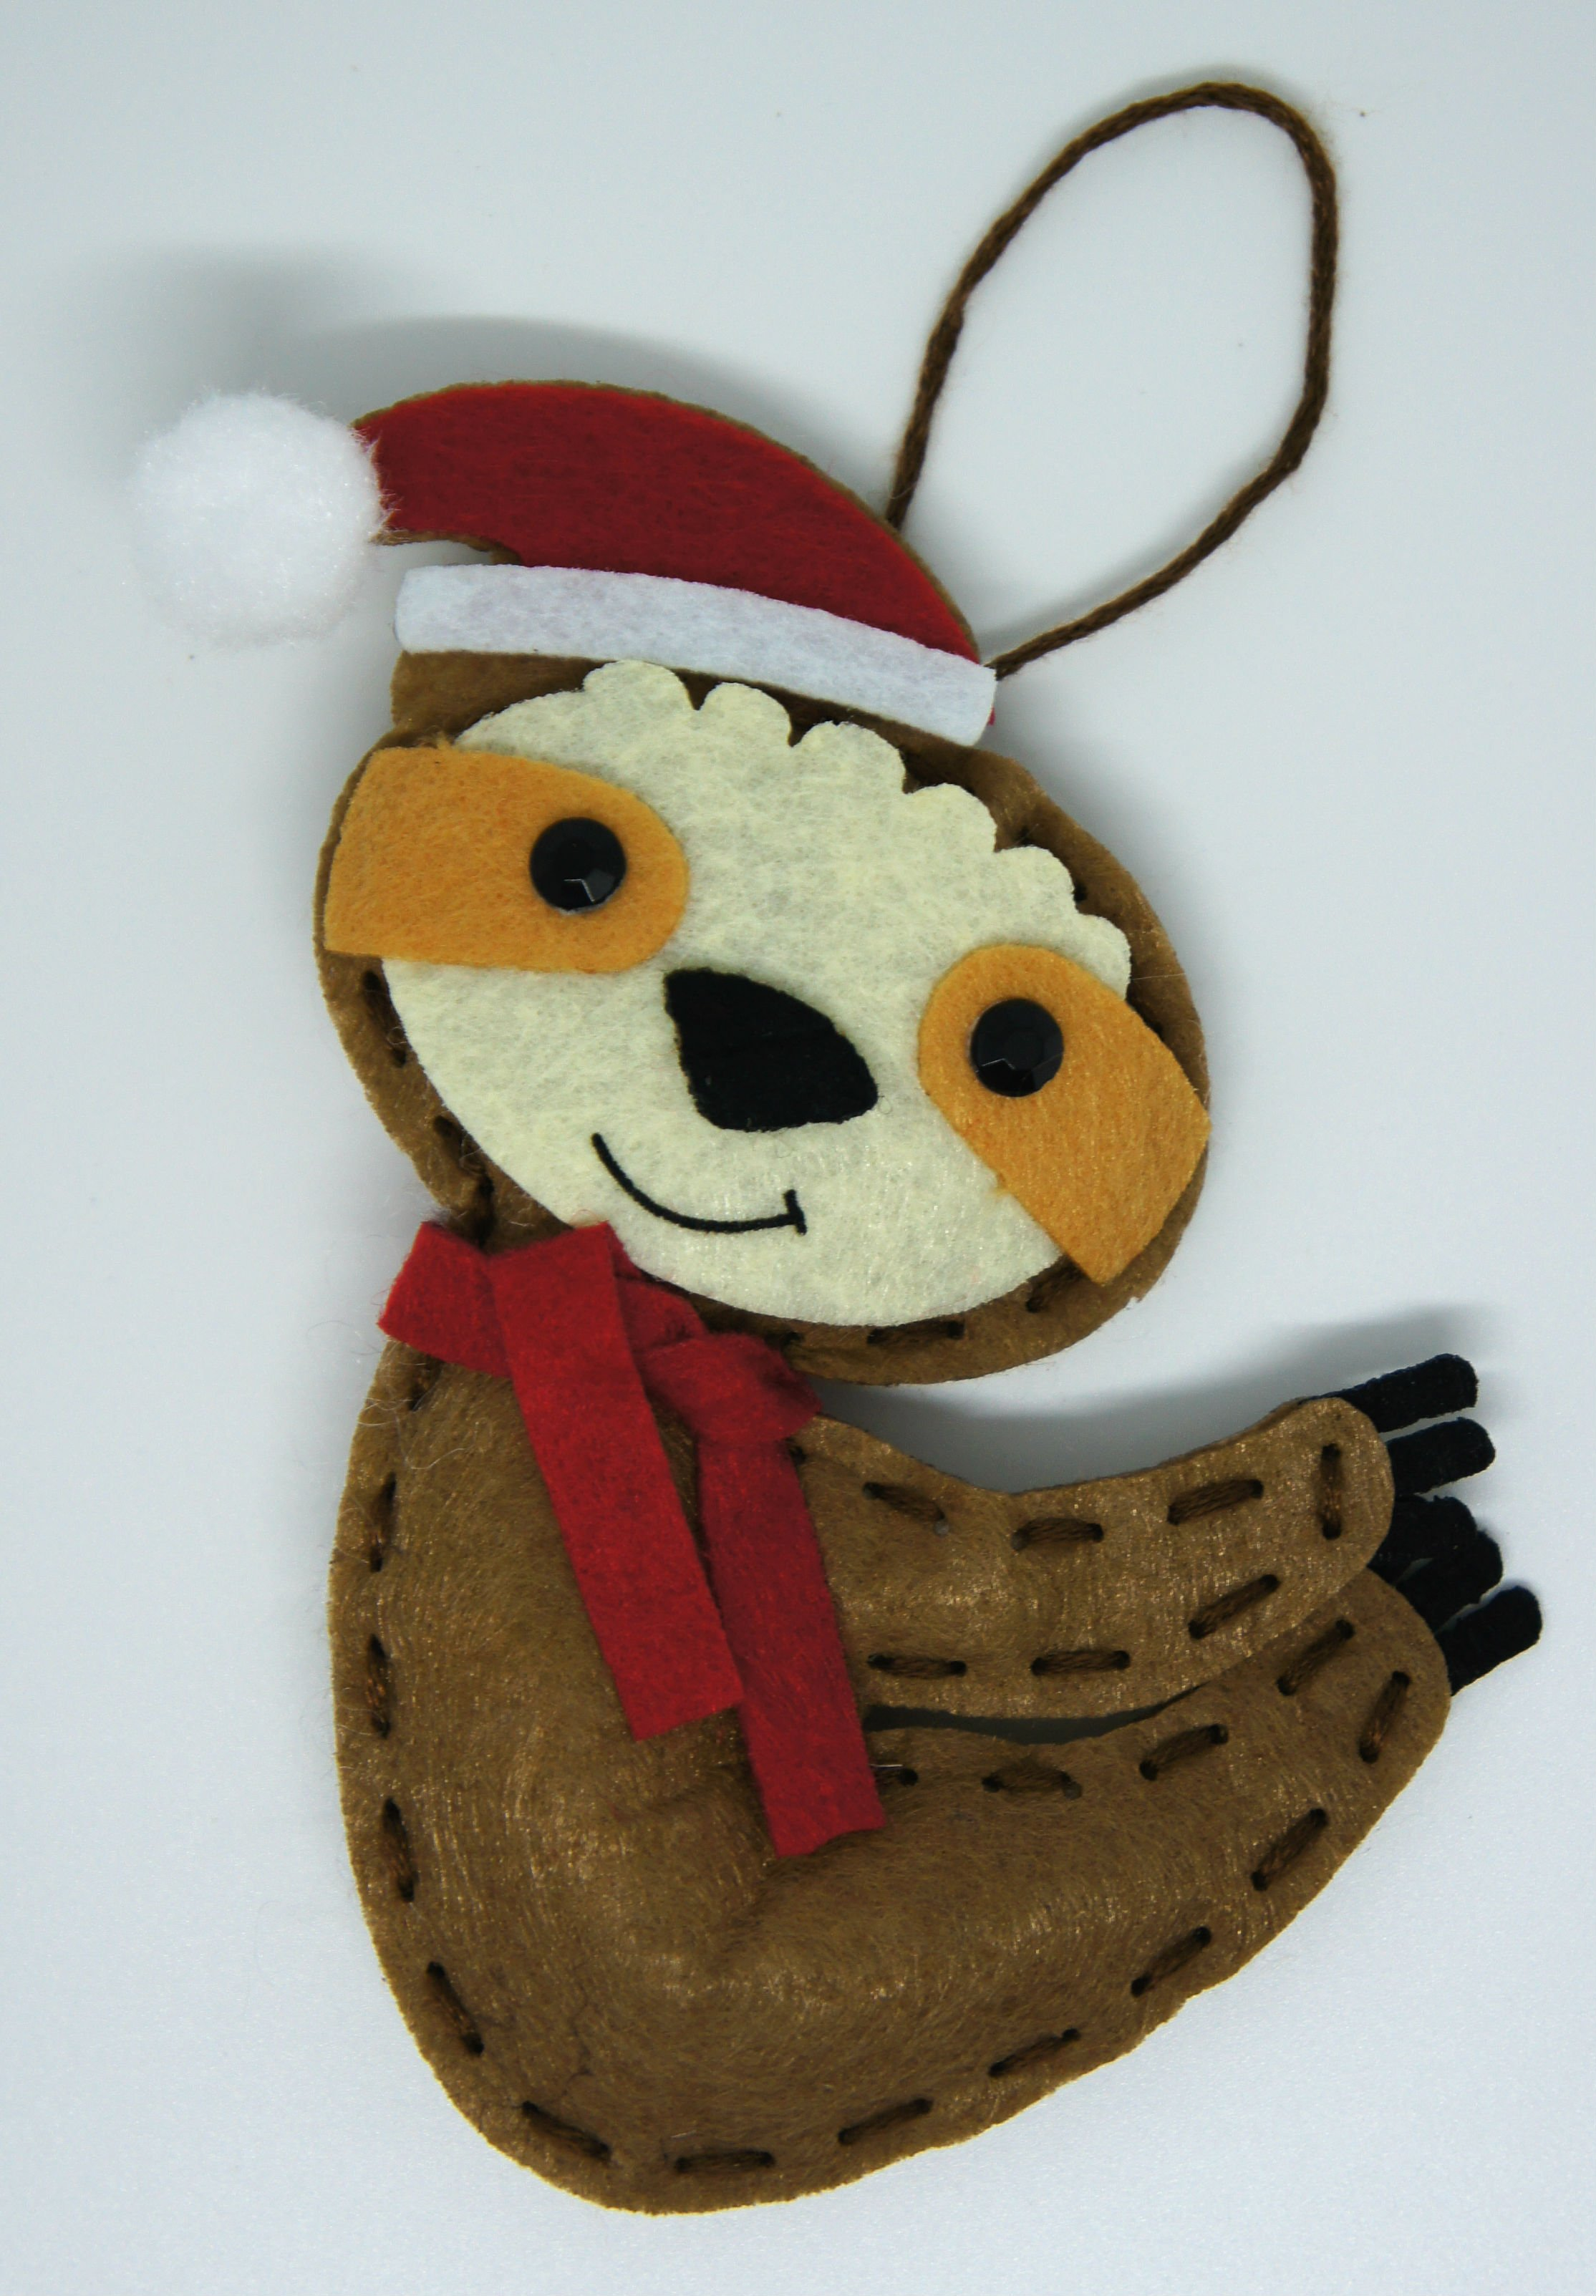 Christmas Sloth Decoration Kit Completed